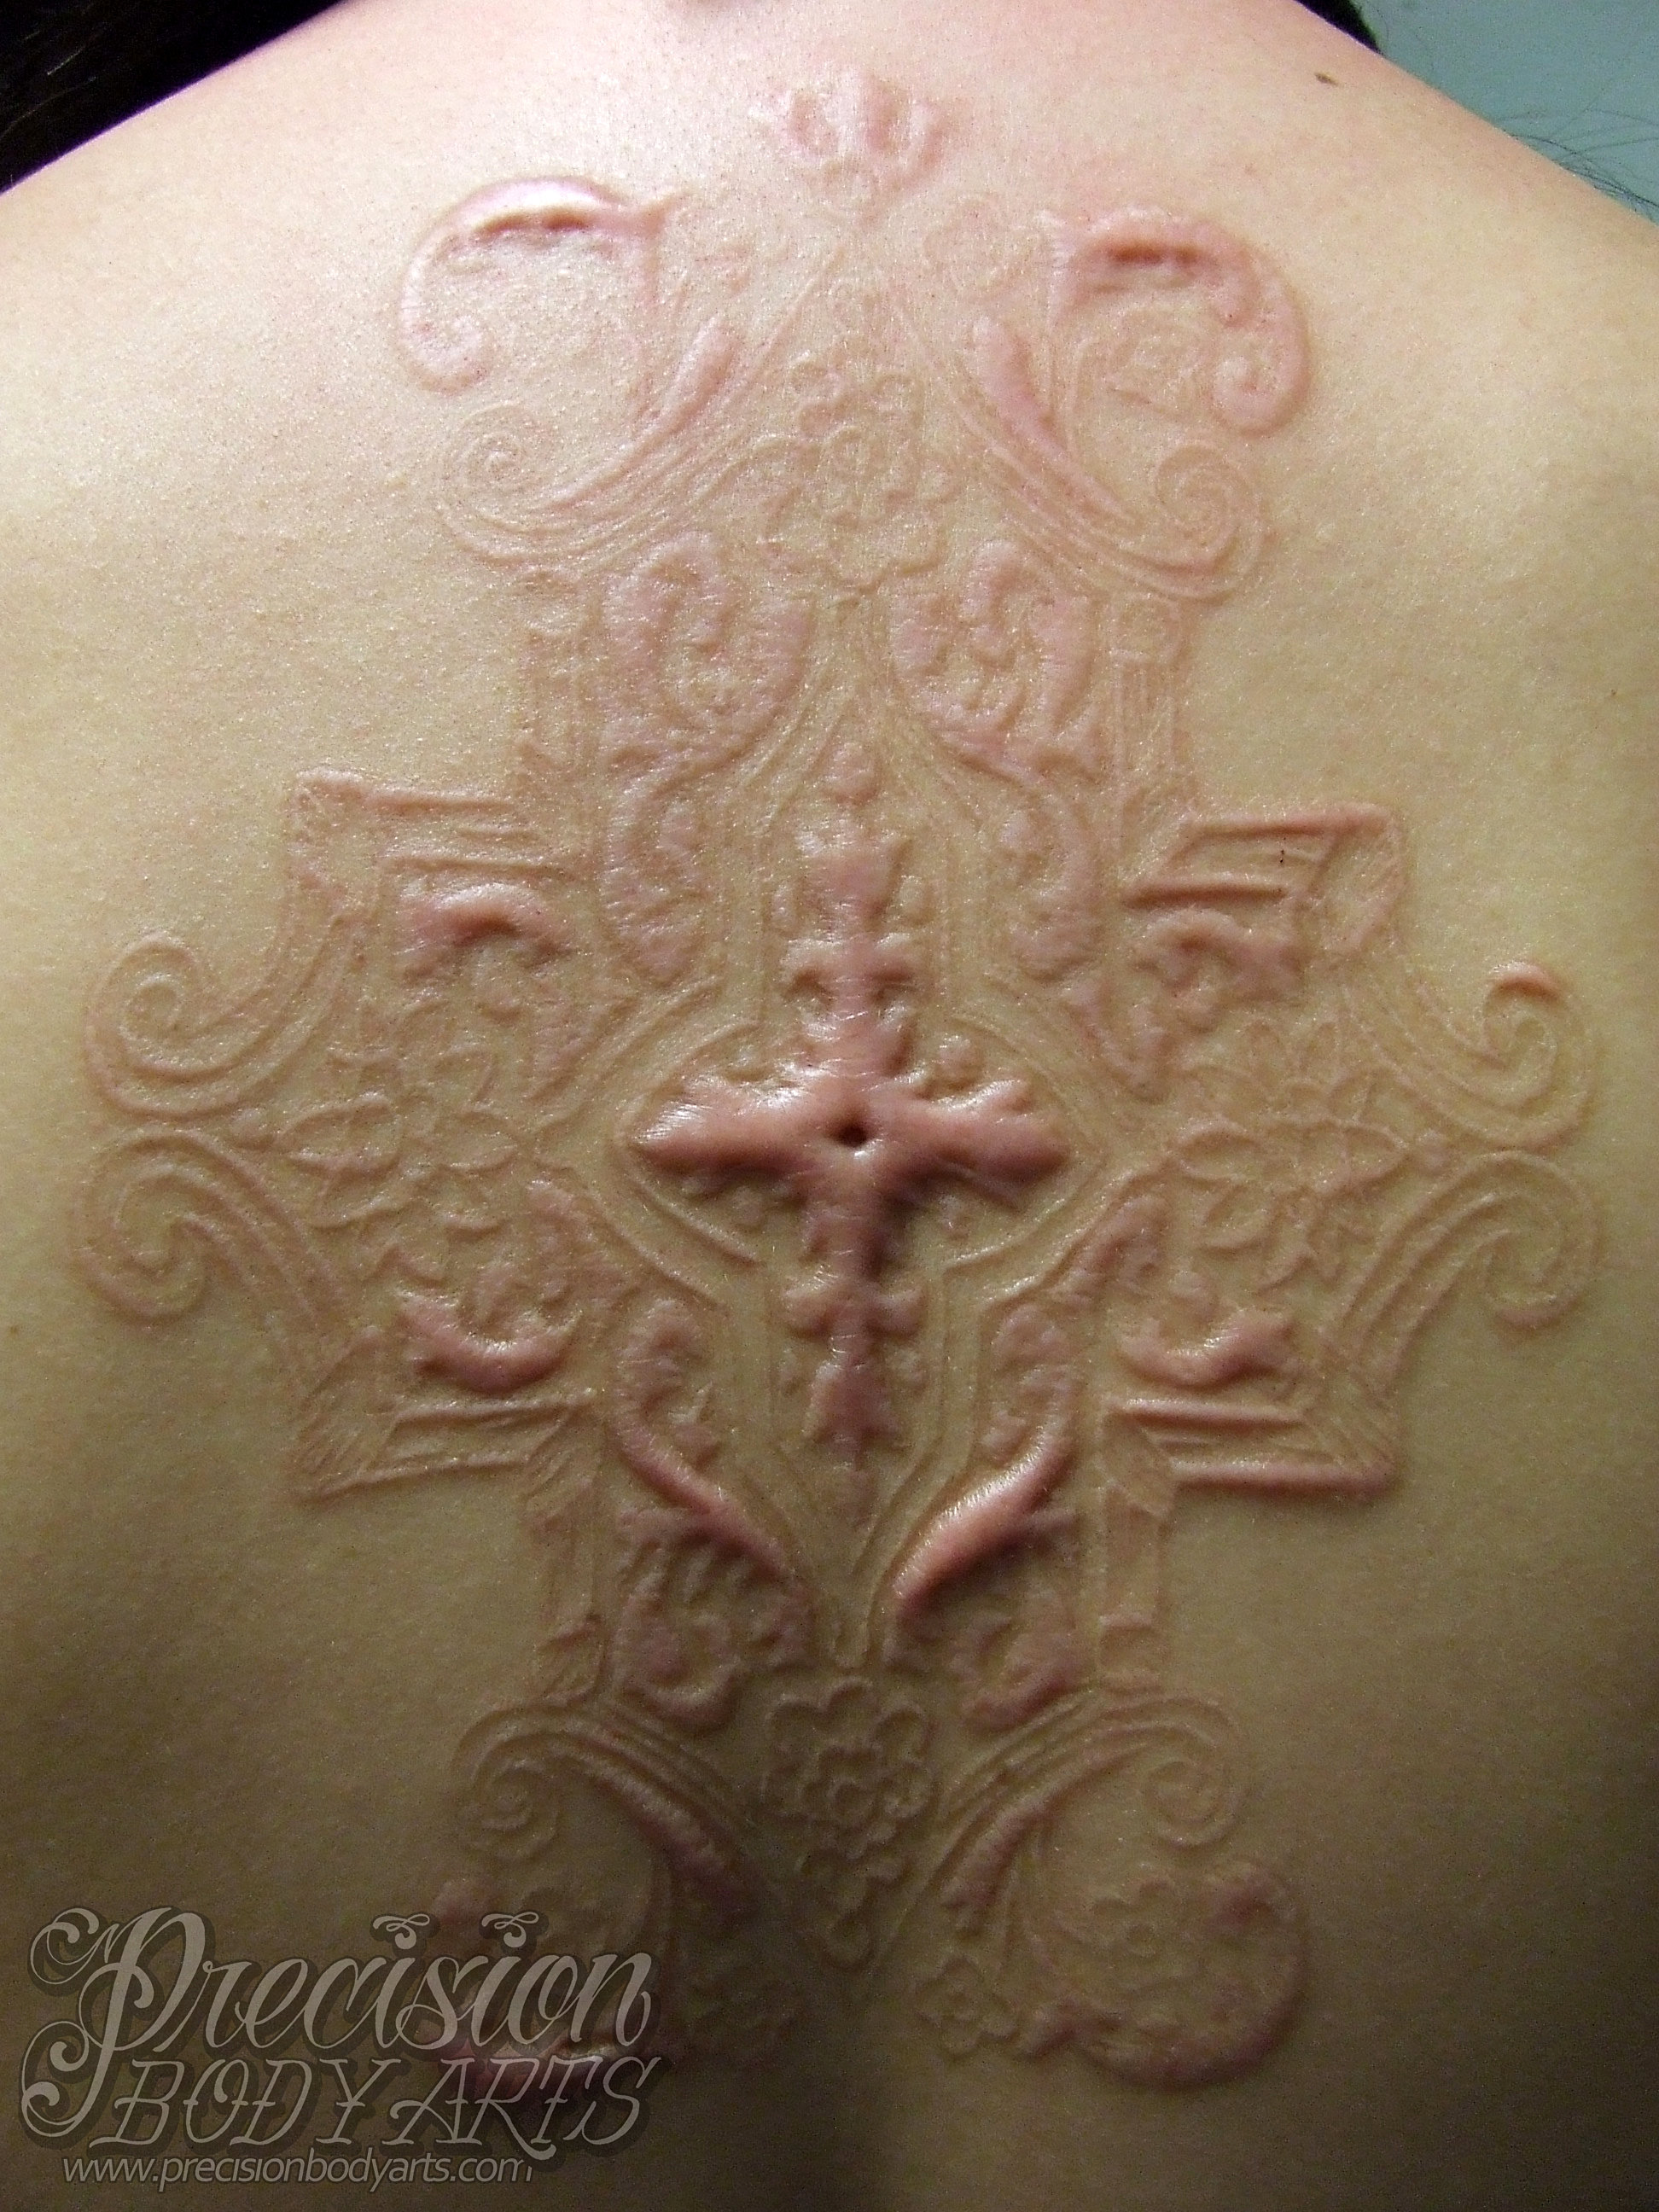 Piercing tattoos scarification and body jewelry in